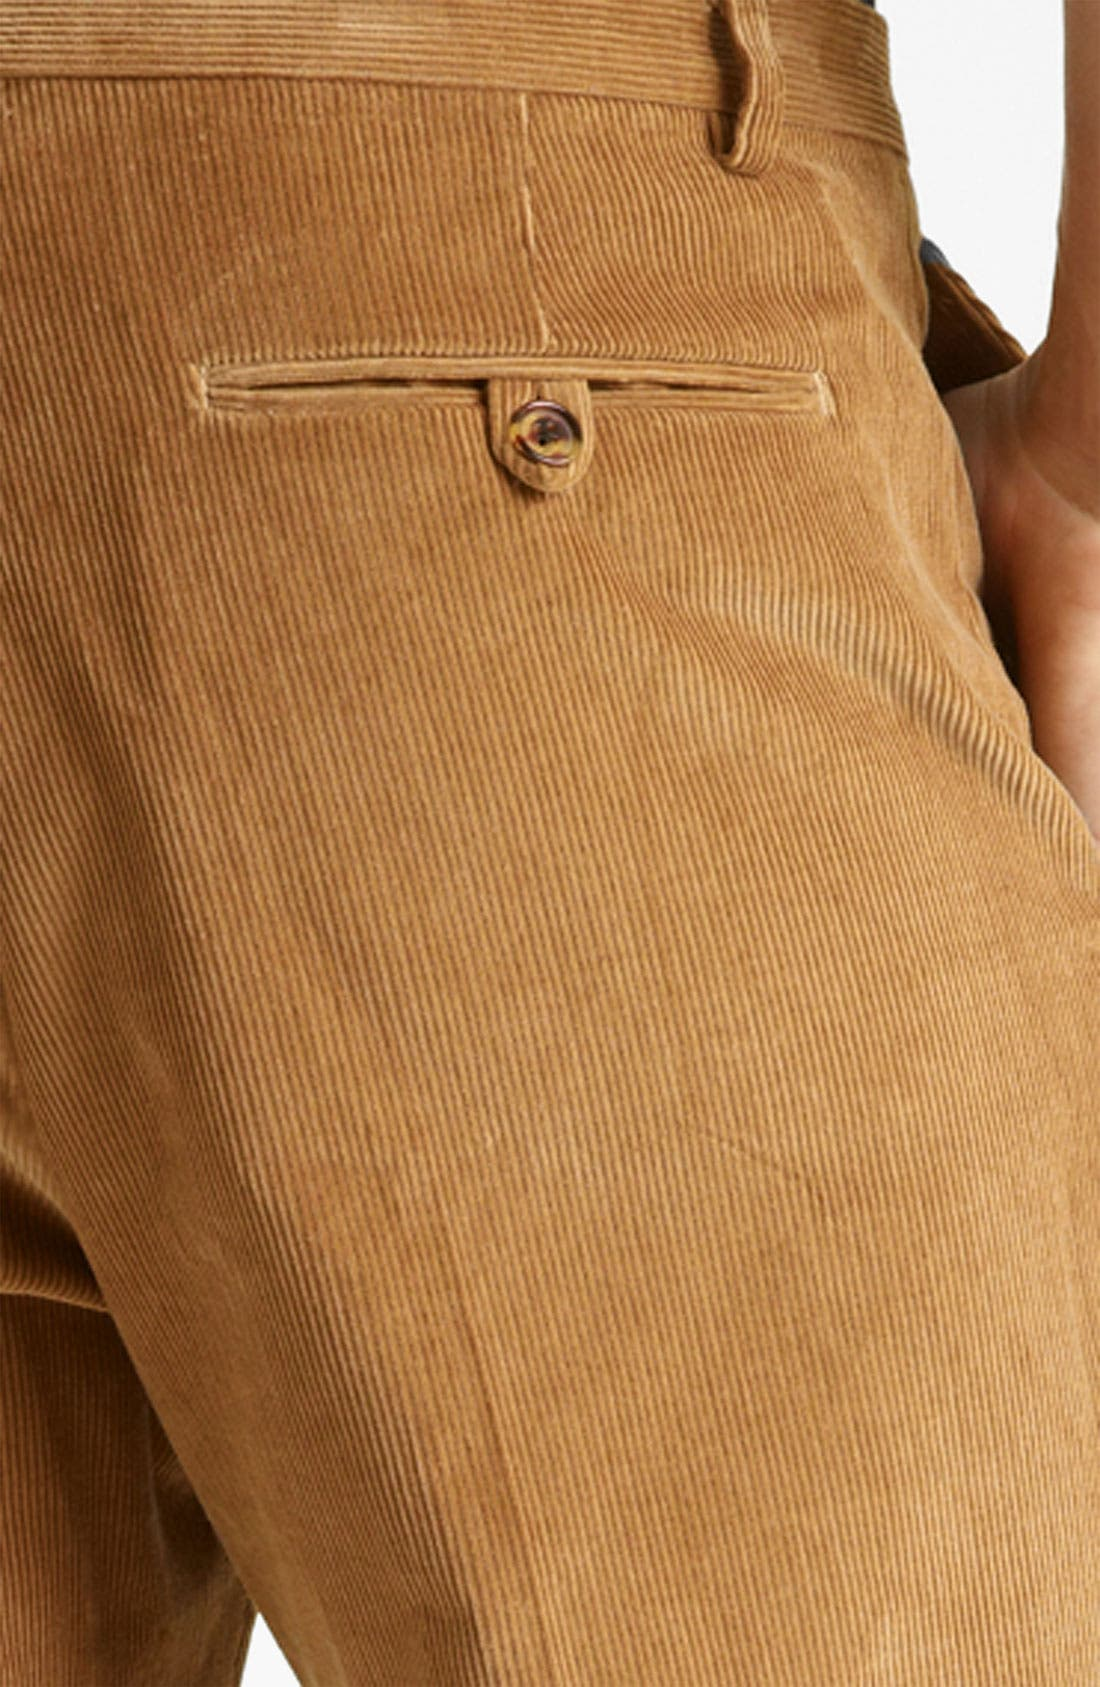 Alternate Image 3  - Shipley & Halmos 'Grand' Corduroy Suit Trousers